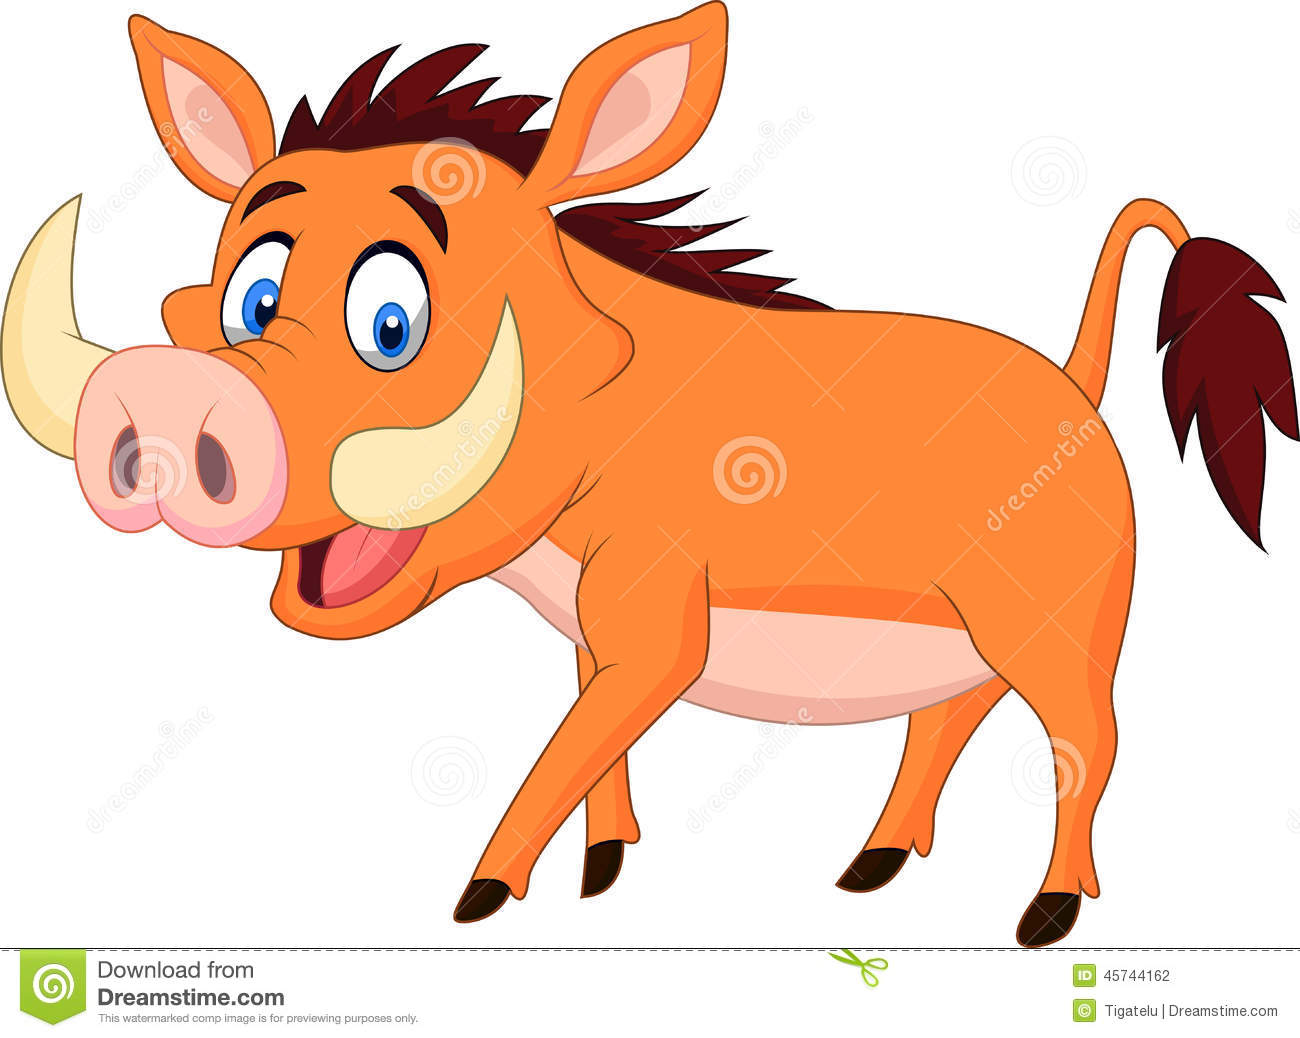 Warthog clipart #13, Download drawings